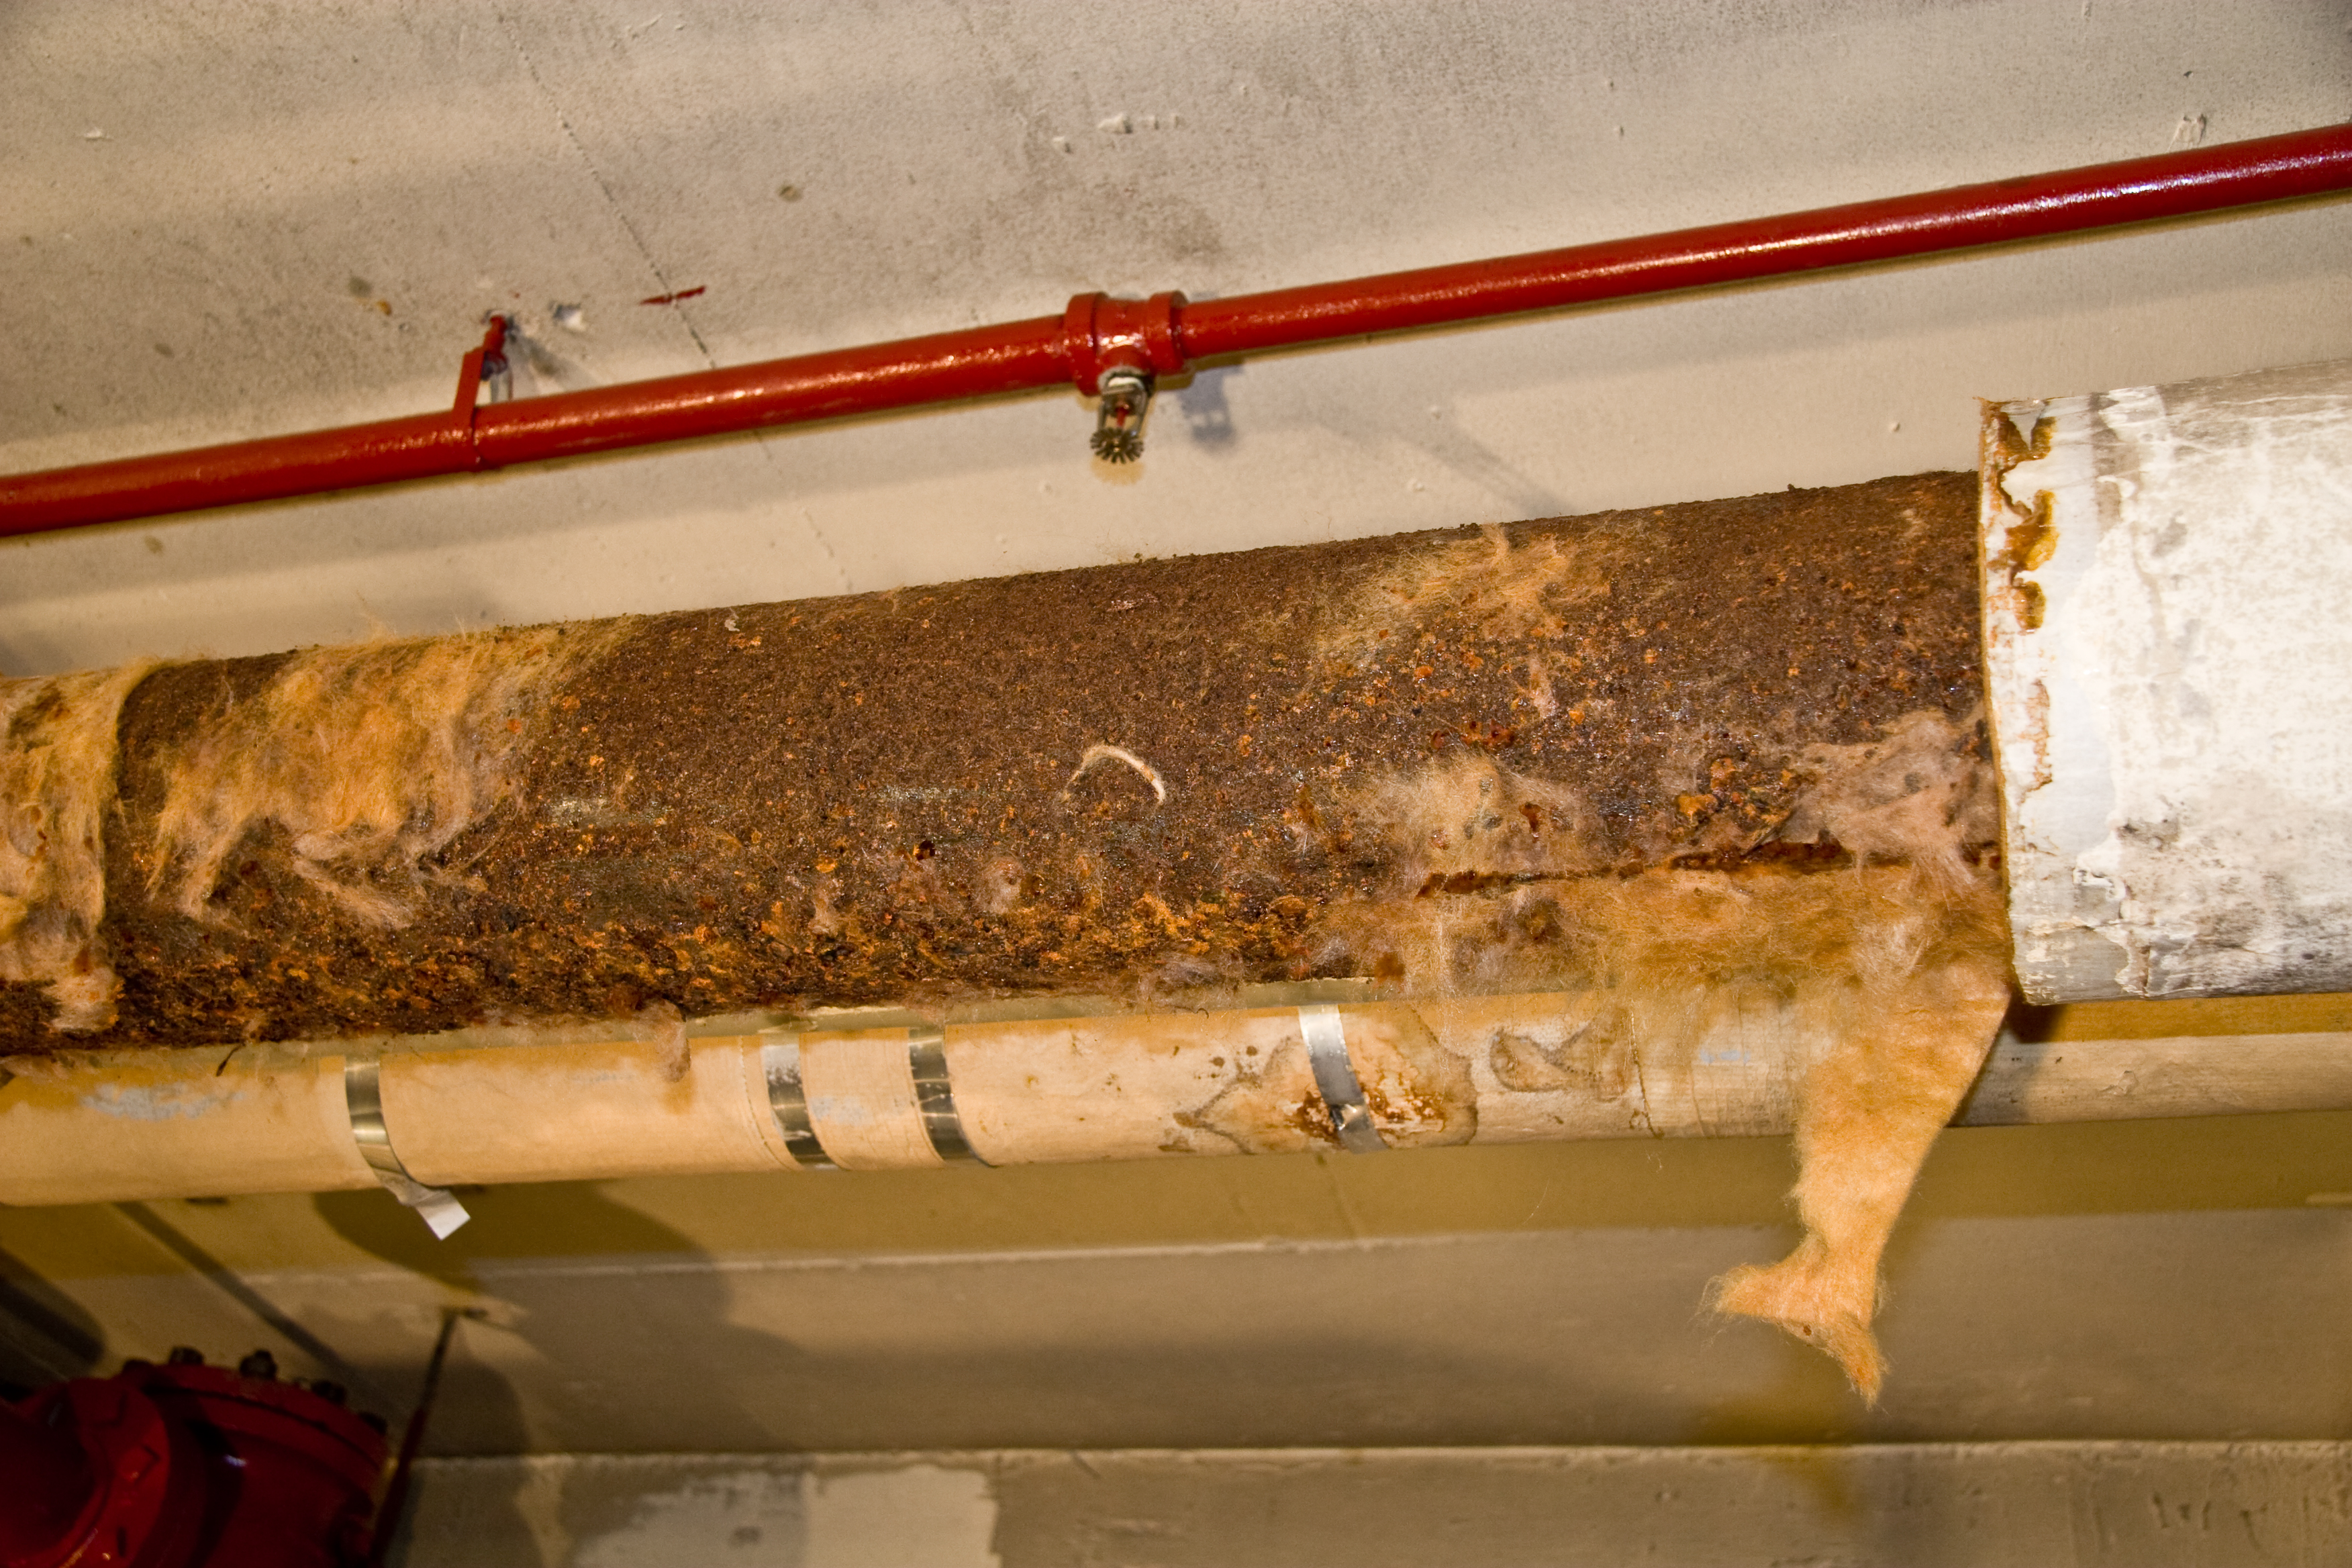 How To Stop Rust >> Specialty Coating Contracting Services - Photos